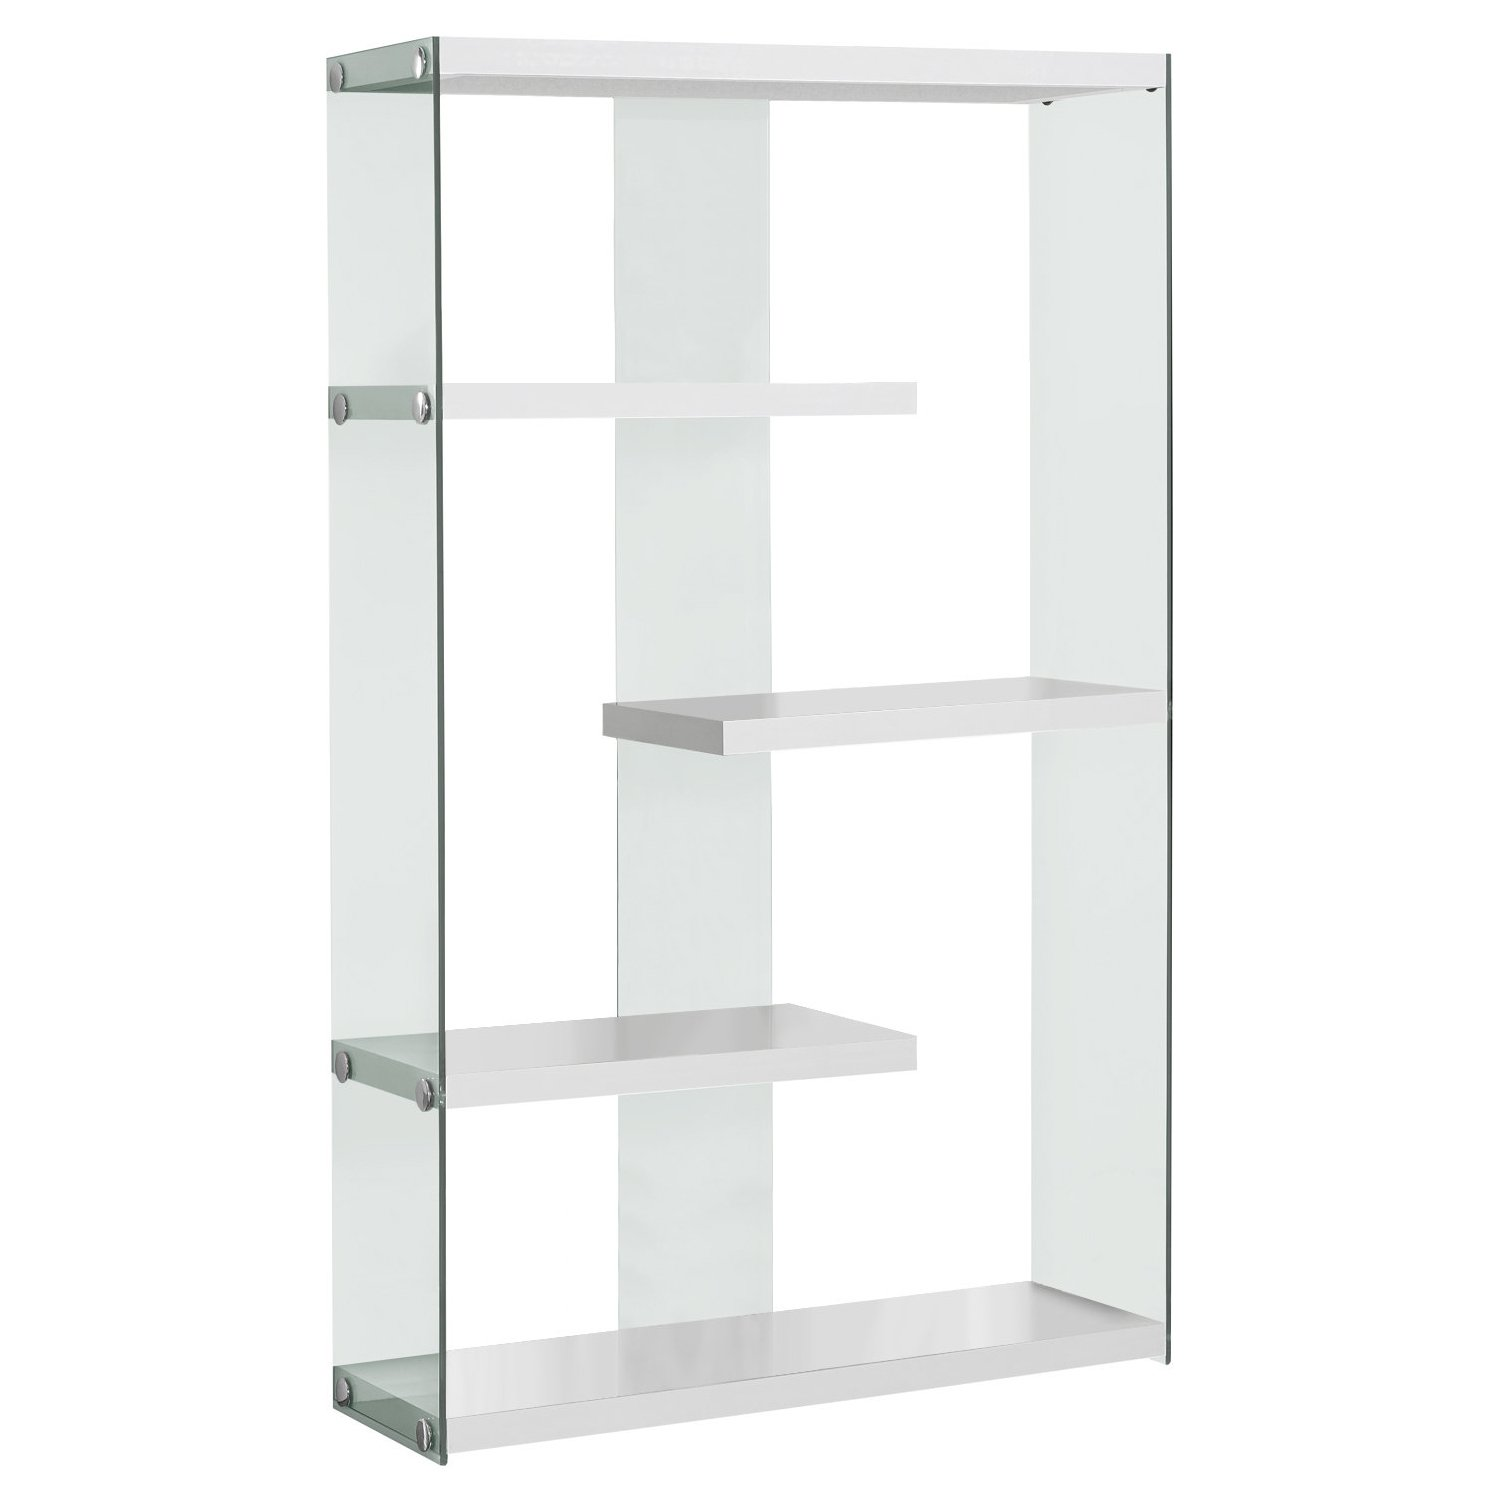 Monarch Specialties I Tempered Glass Bookcase, 60'', Glossy White by Monarch Specialties